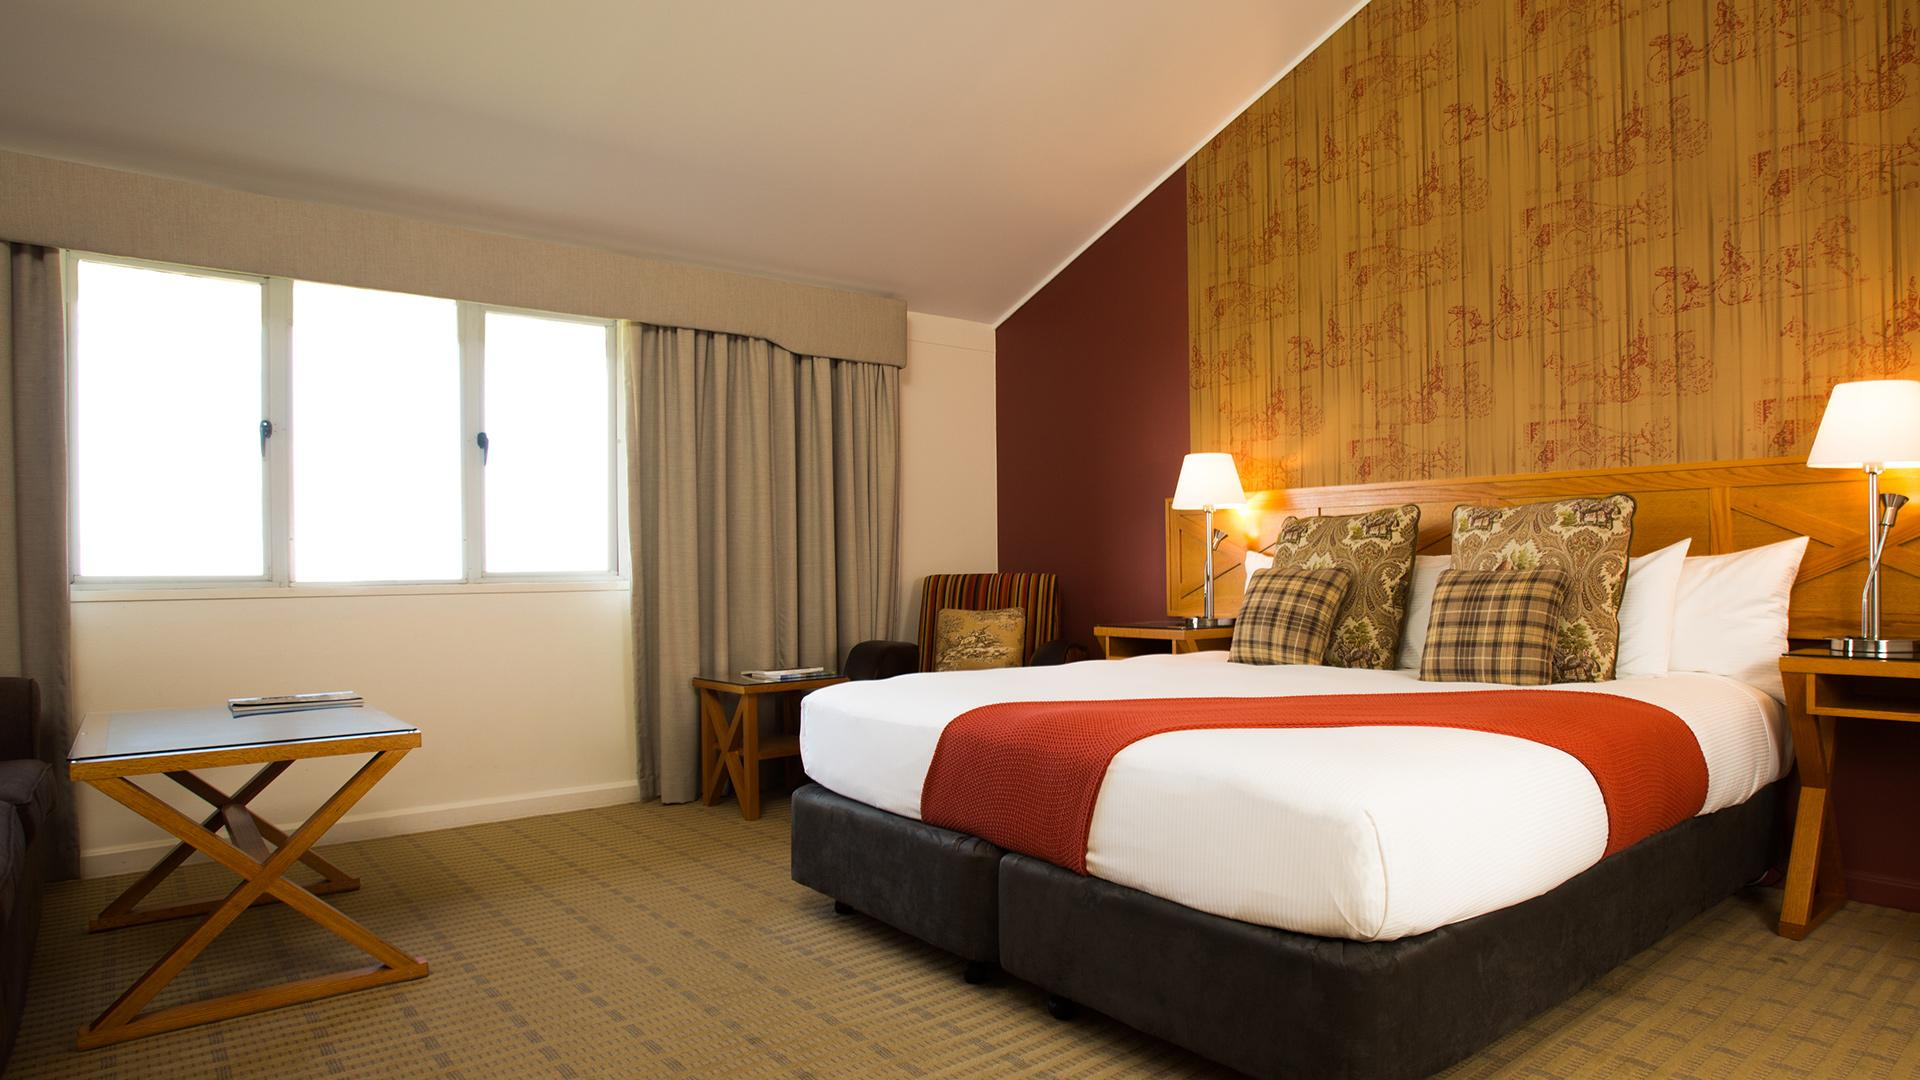 King Superior Room JUL20 image 1 at Fairmont Resort & Spa Blue Mountains — MGallery by Sofitel by Blue Mountains City Council, New South Wales, Australia